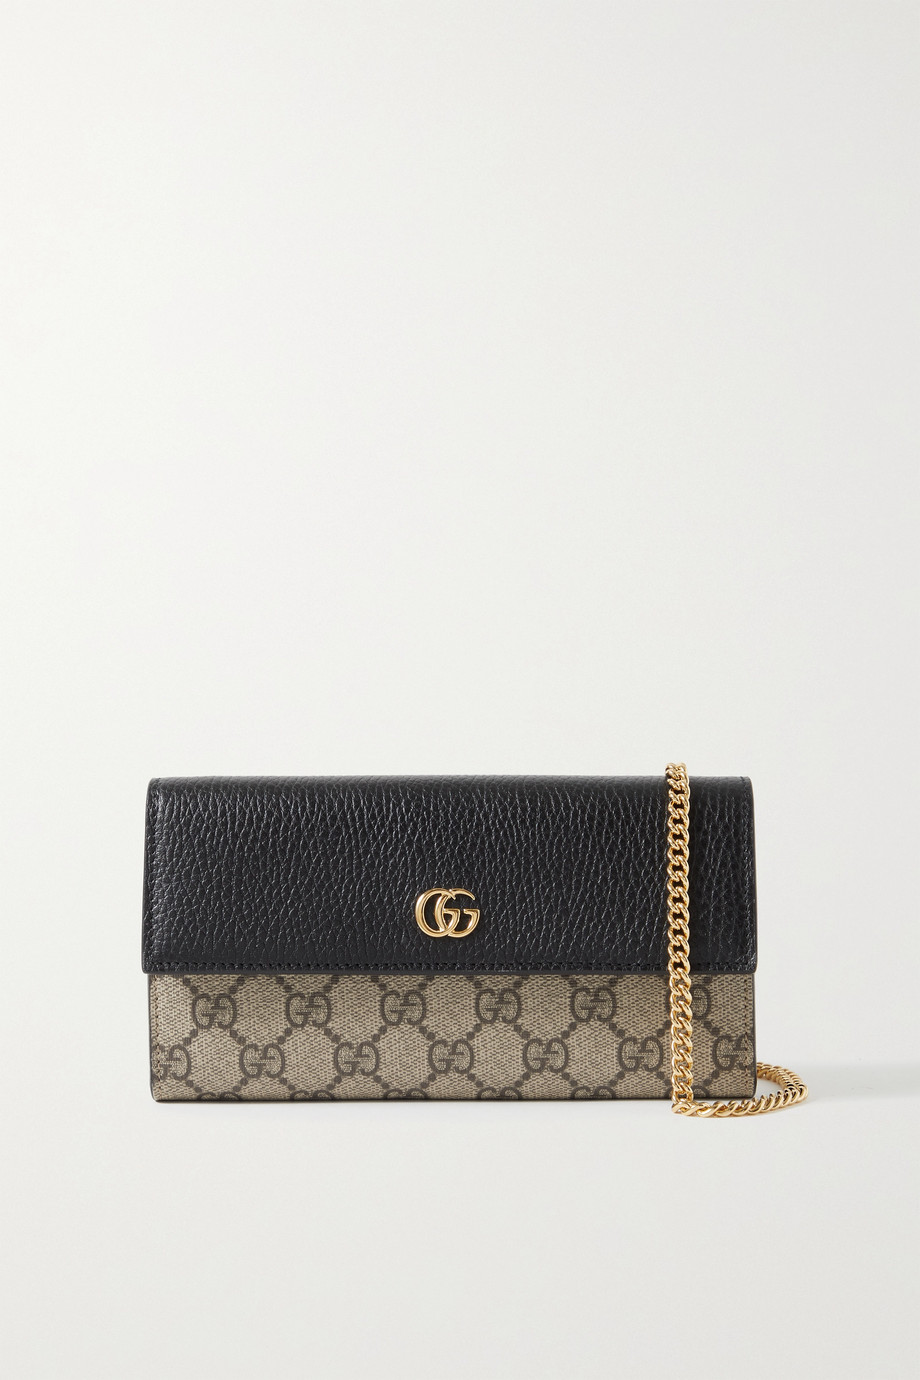 Gucci + NET SUSTAIN GG Marmont Petite textured-leather and printed coated-canvas shoulder bag